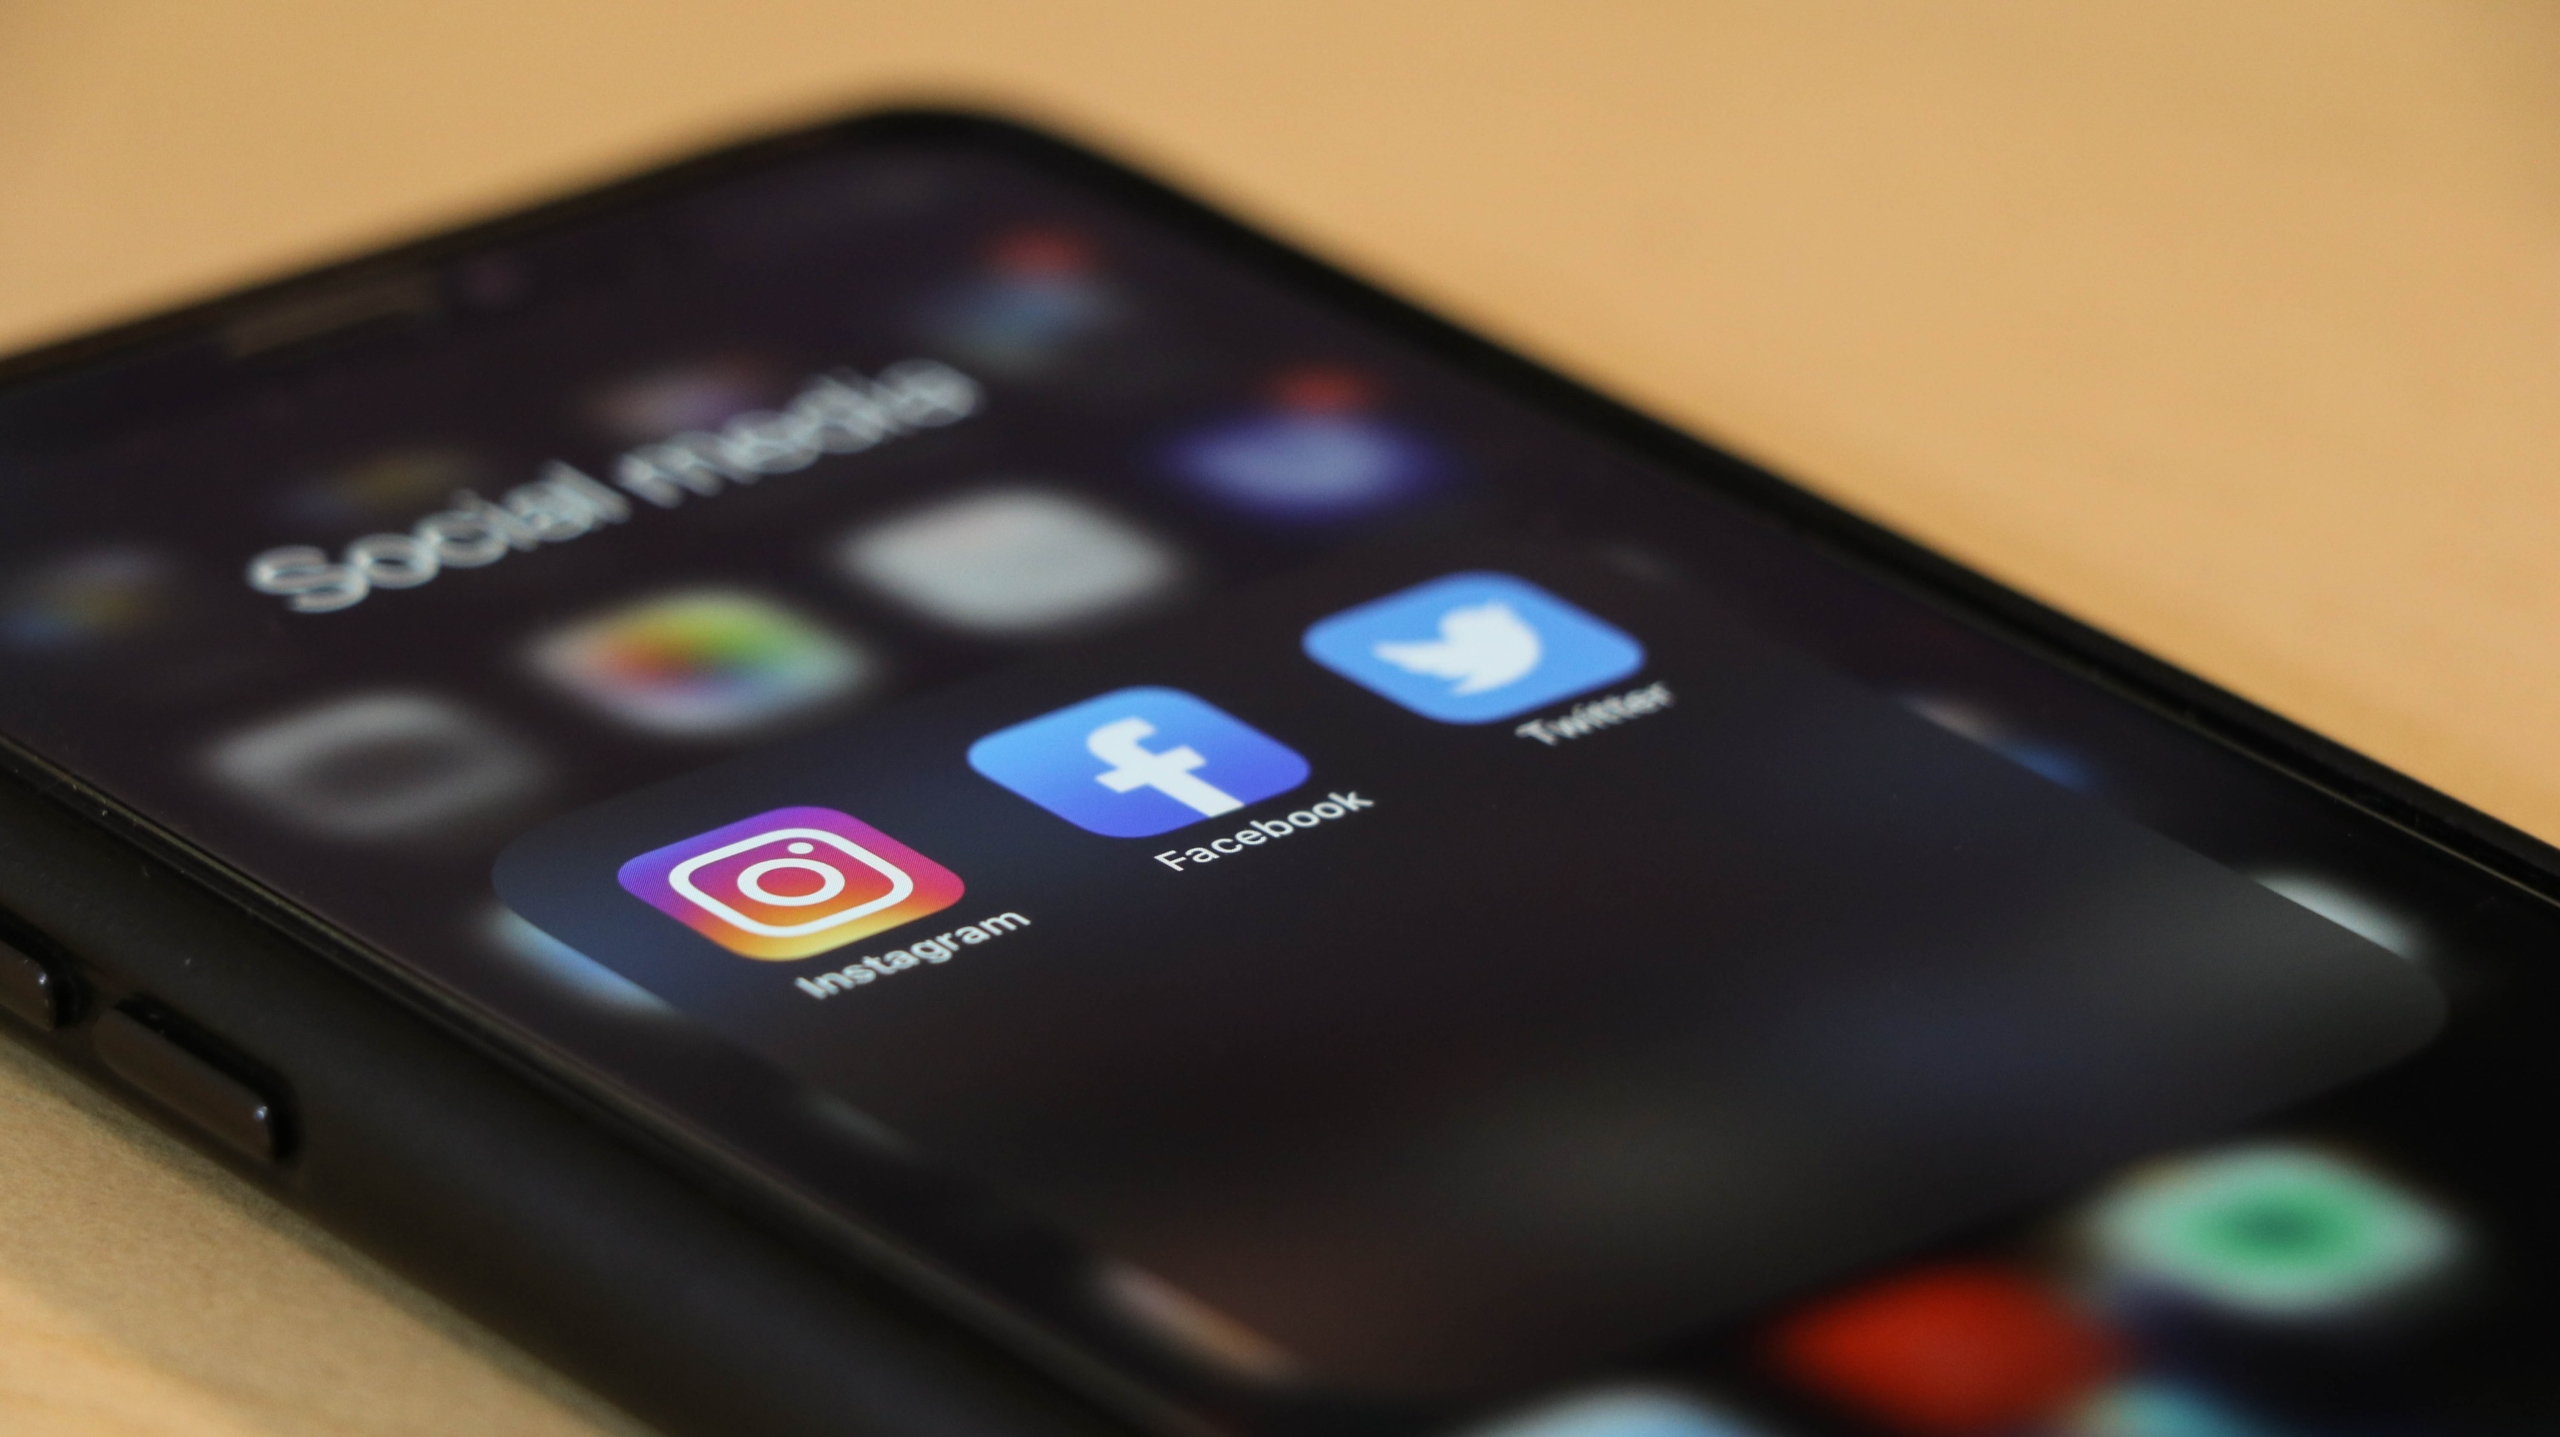 social media apps on mobile phone